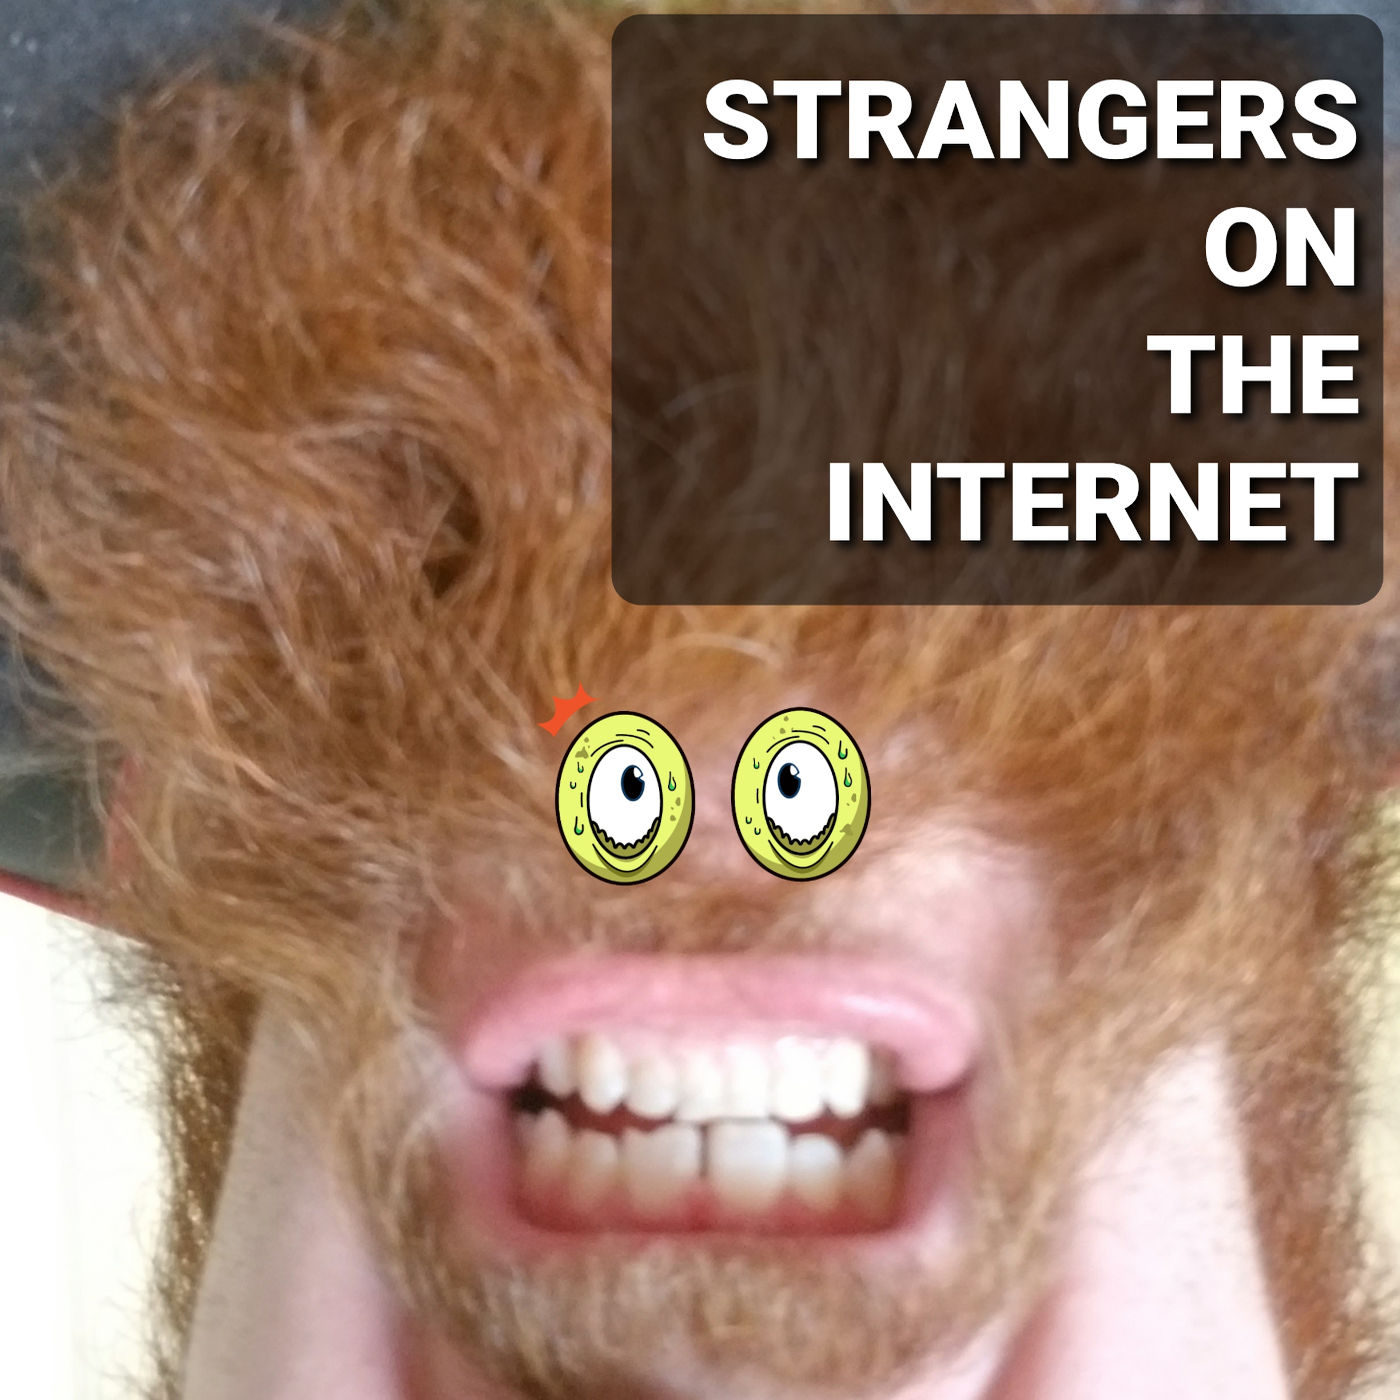 Strangers on the Internet